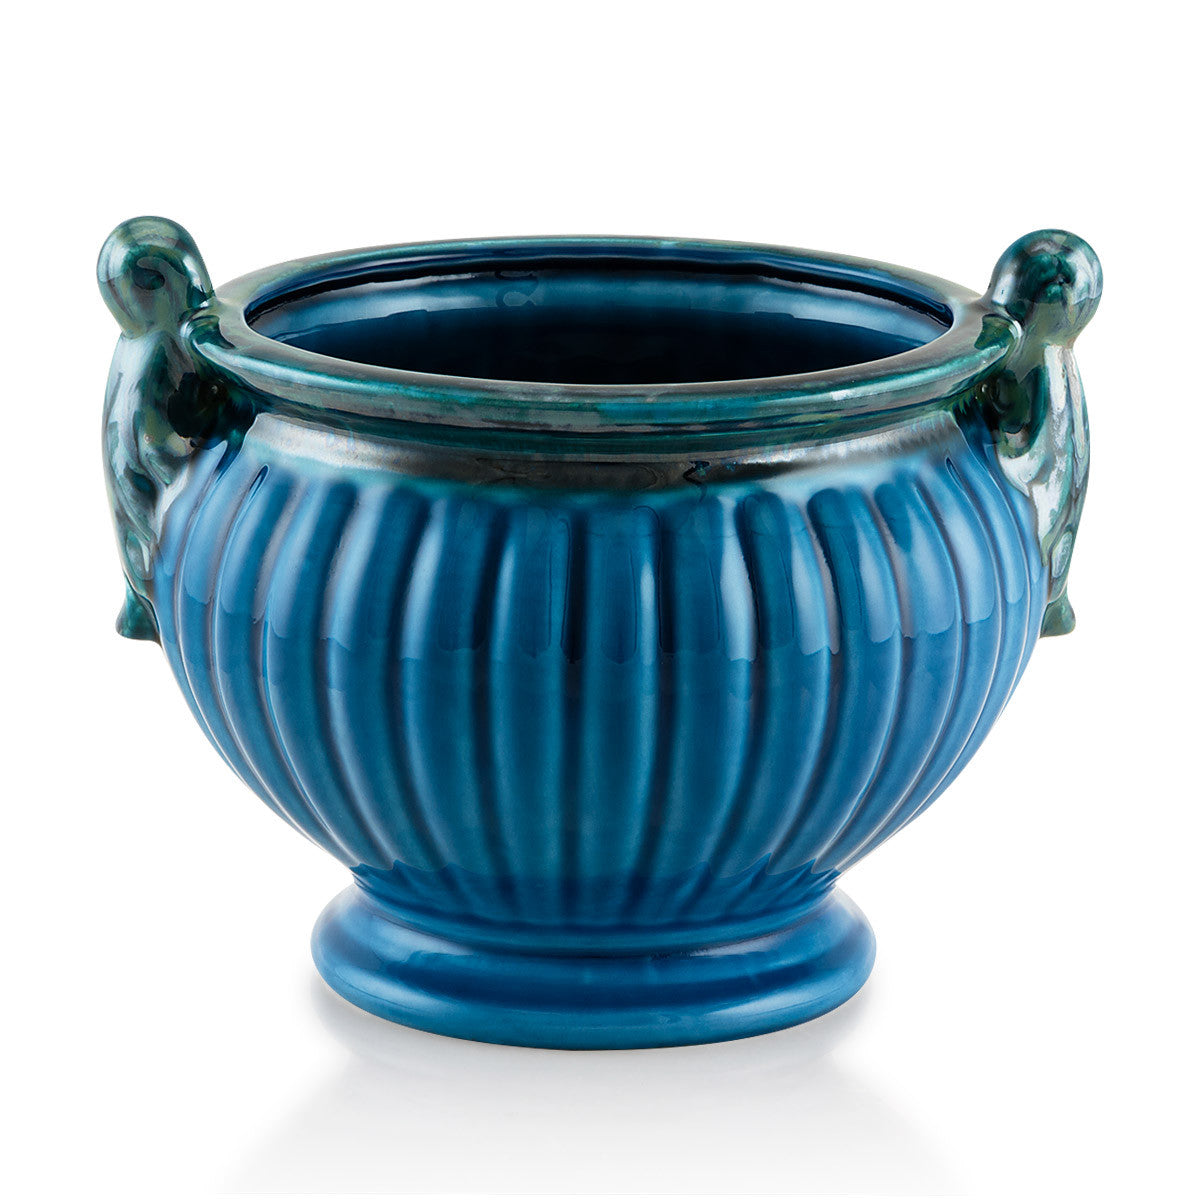 Ceramic ribbed cachepot with handles in blue color